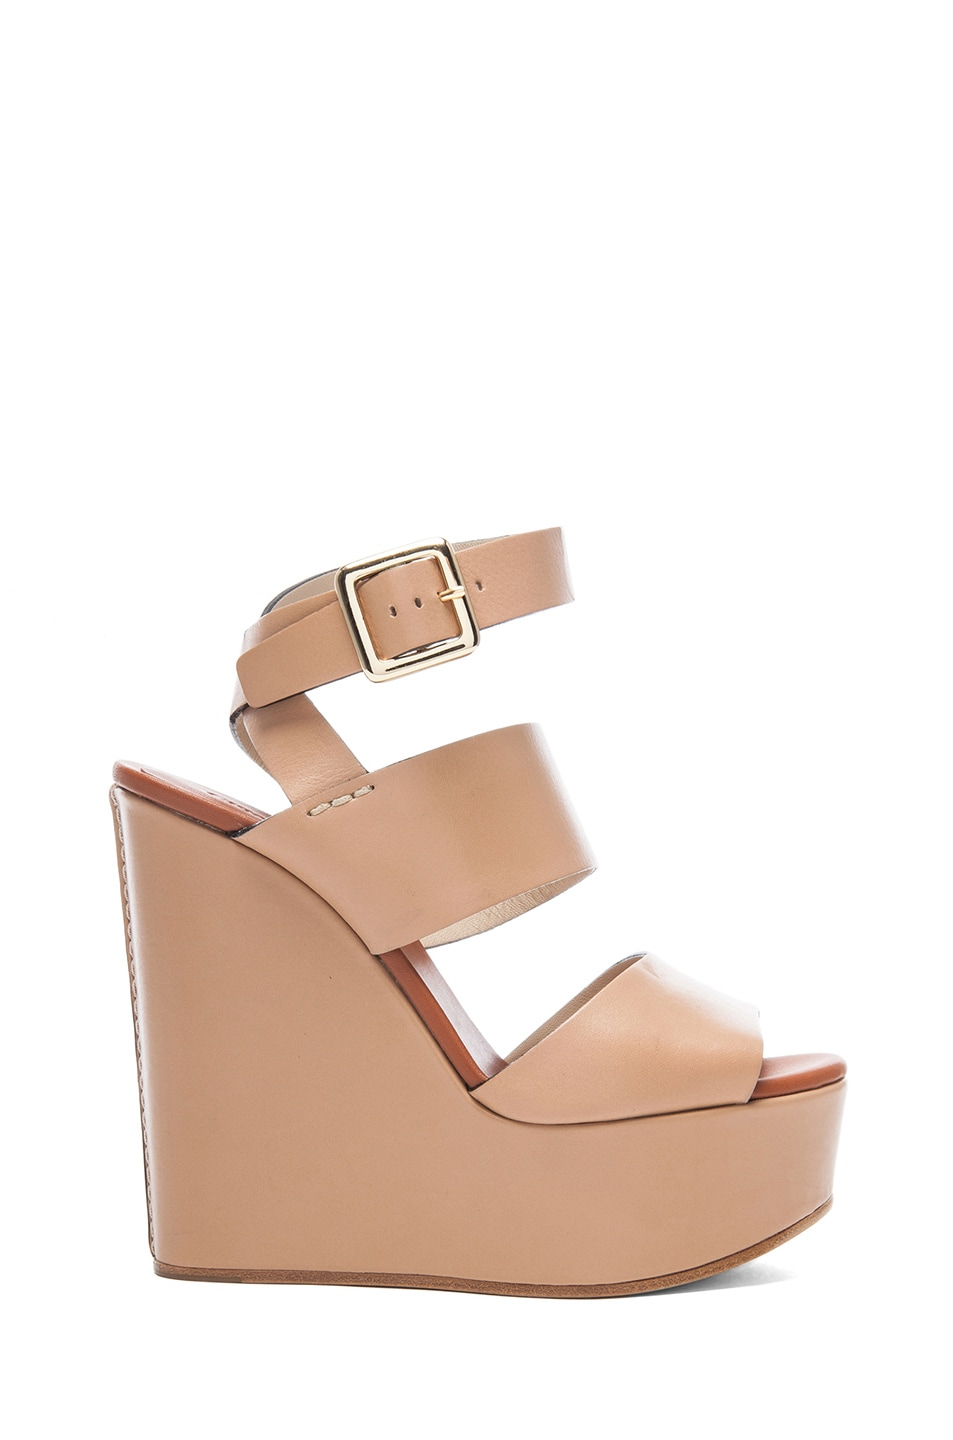 318a1fec89f5f Image 1 of Chloe Leather Wedges in Wet Sand